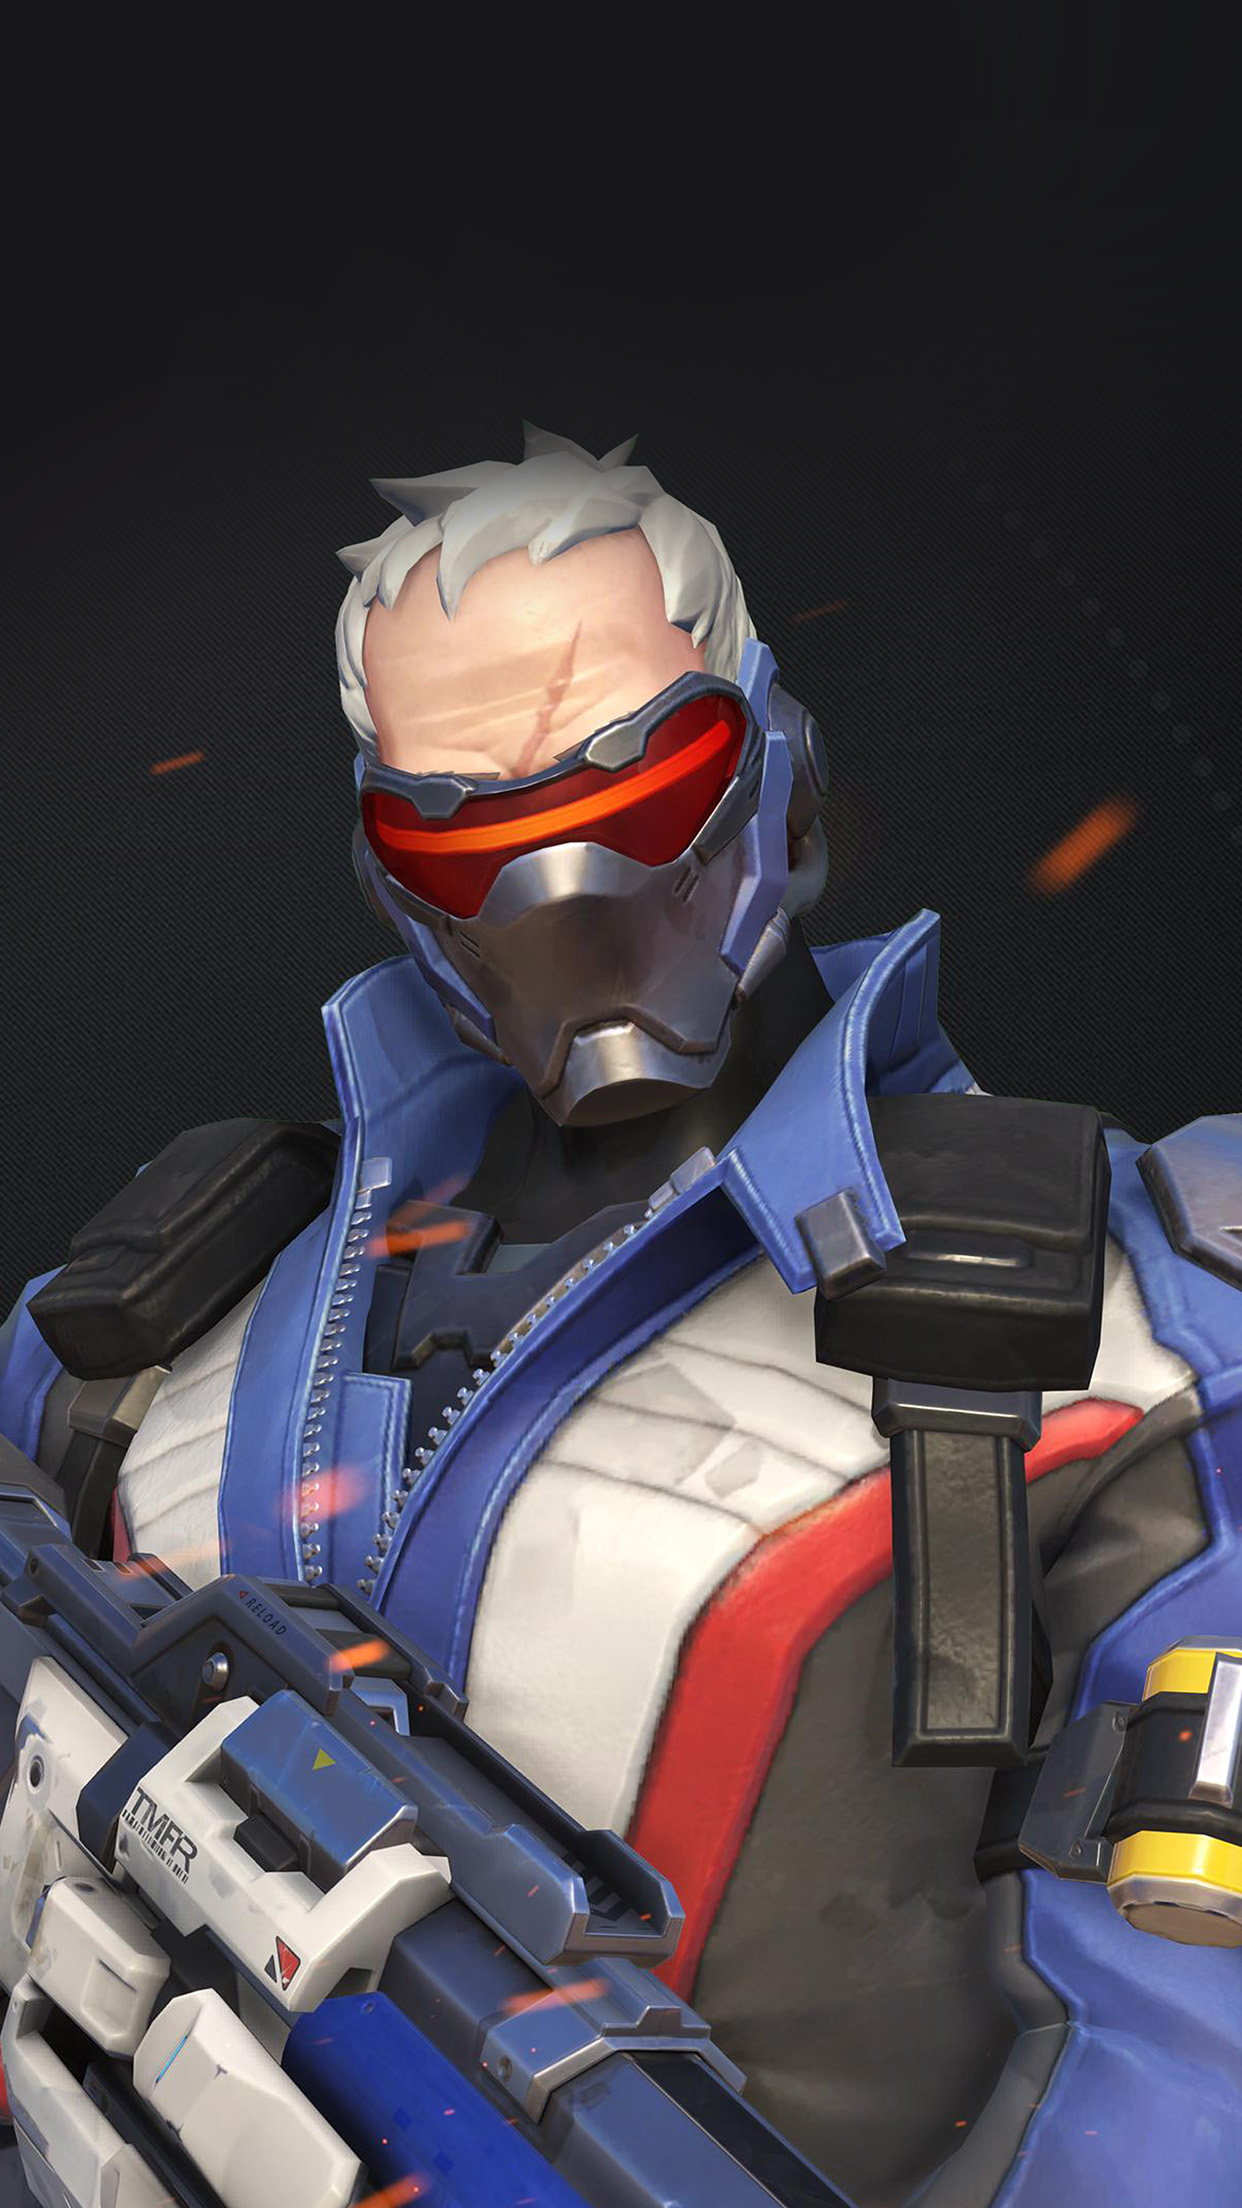 Summer Anime Wallpaper Papers Co Iphone Wallpaper Au09 Overwatch Soldier 76